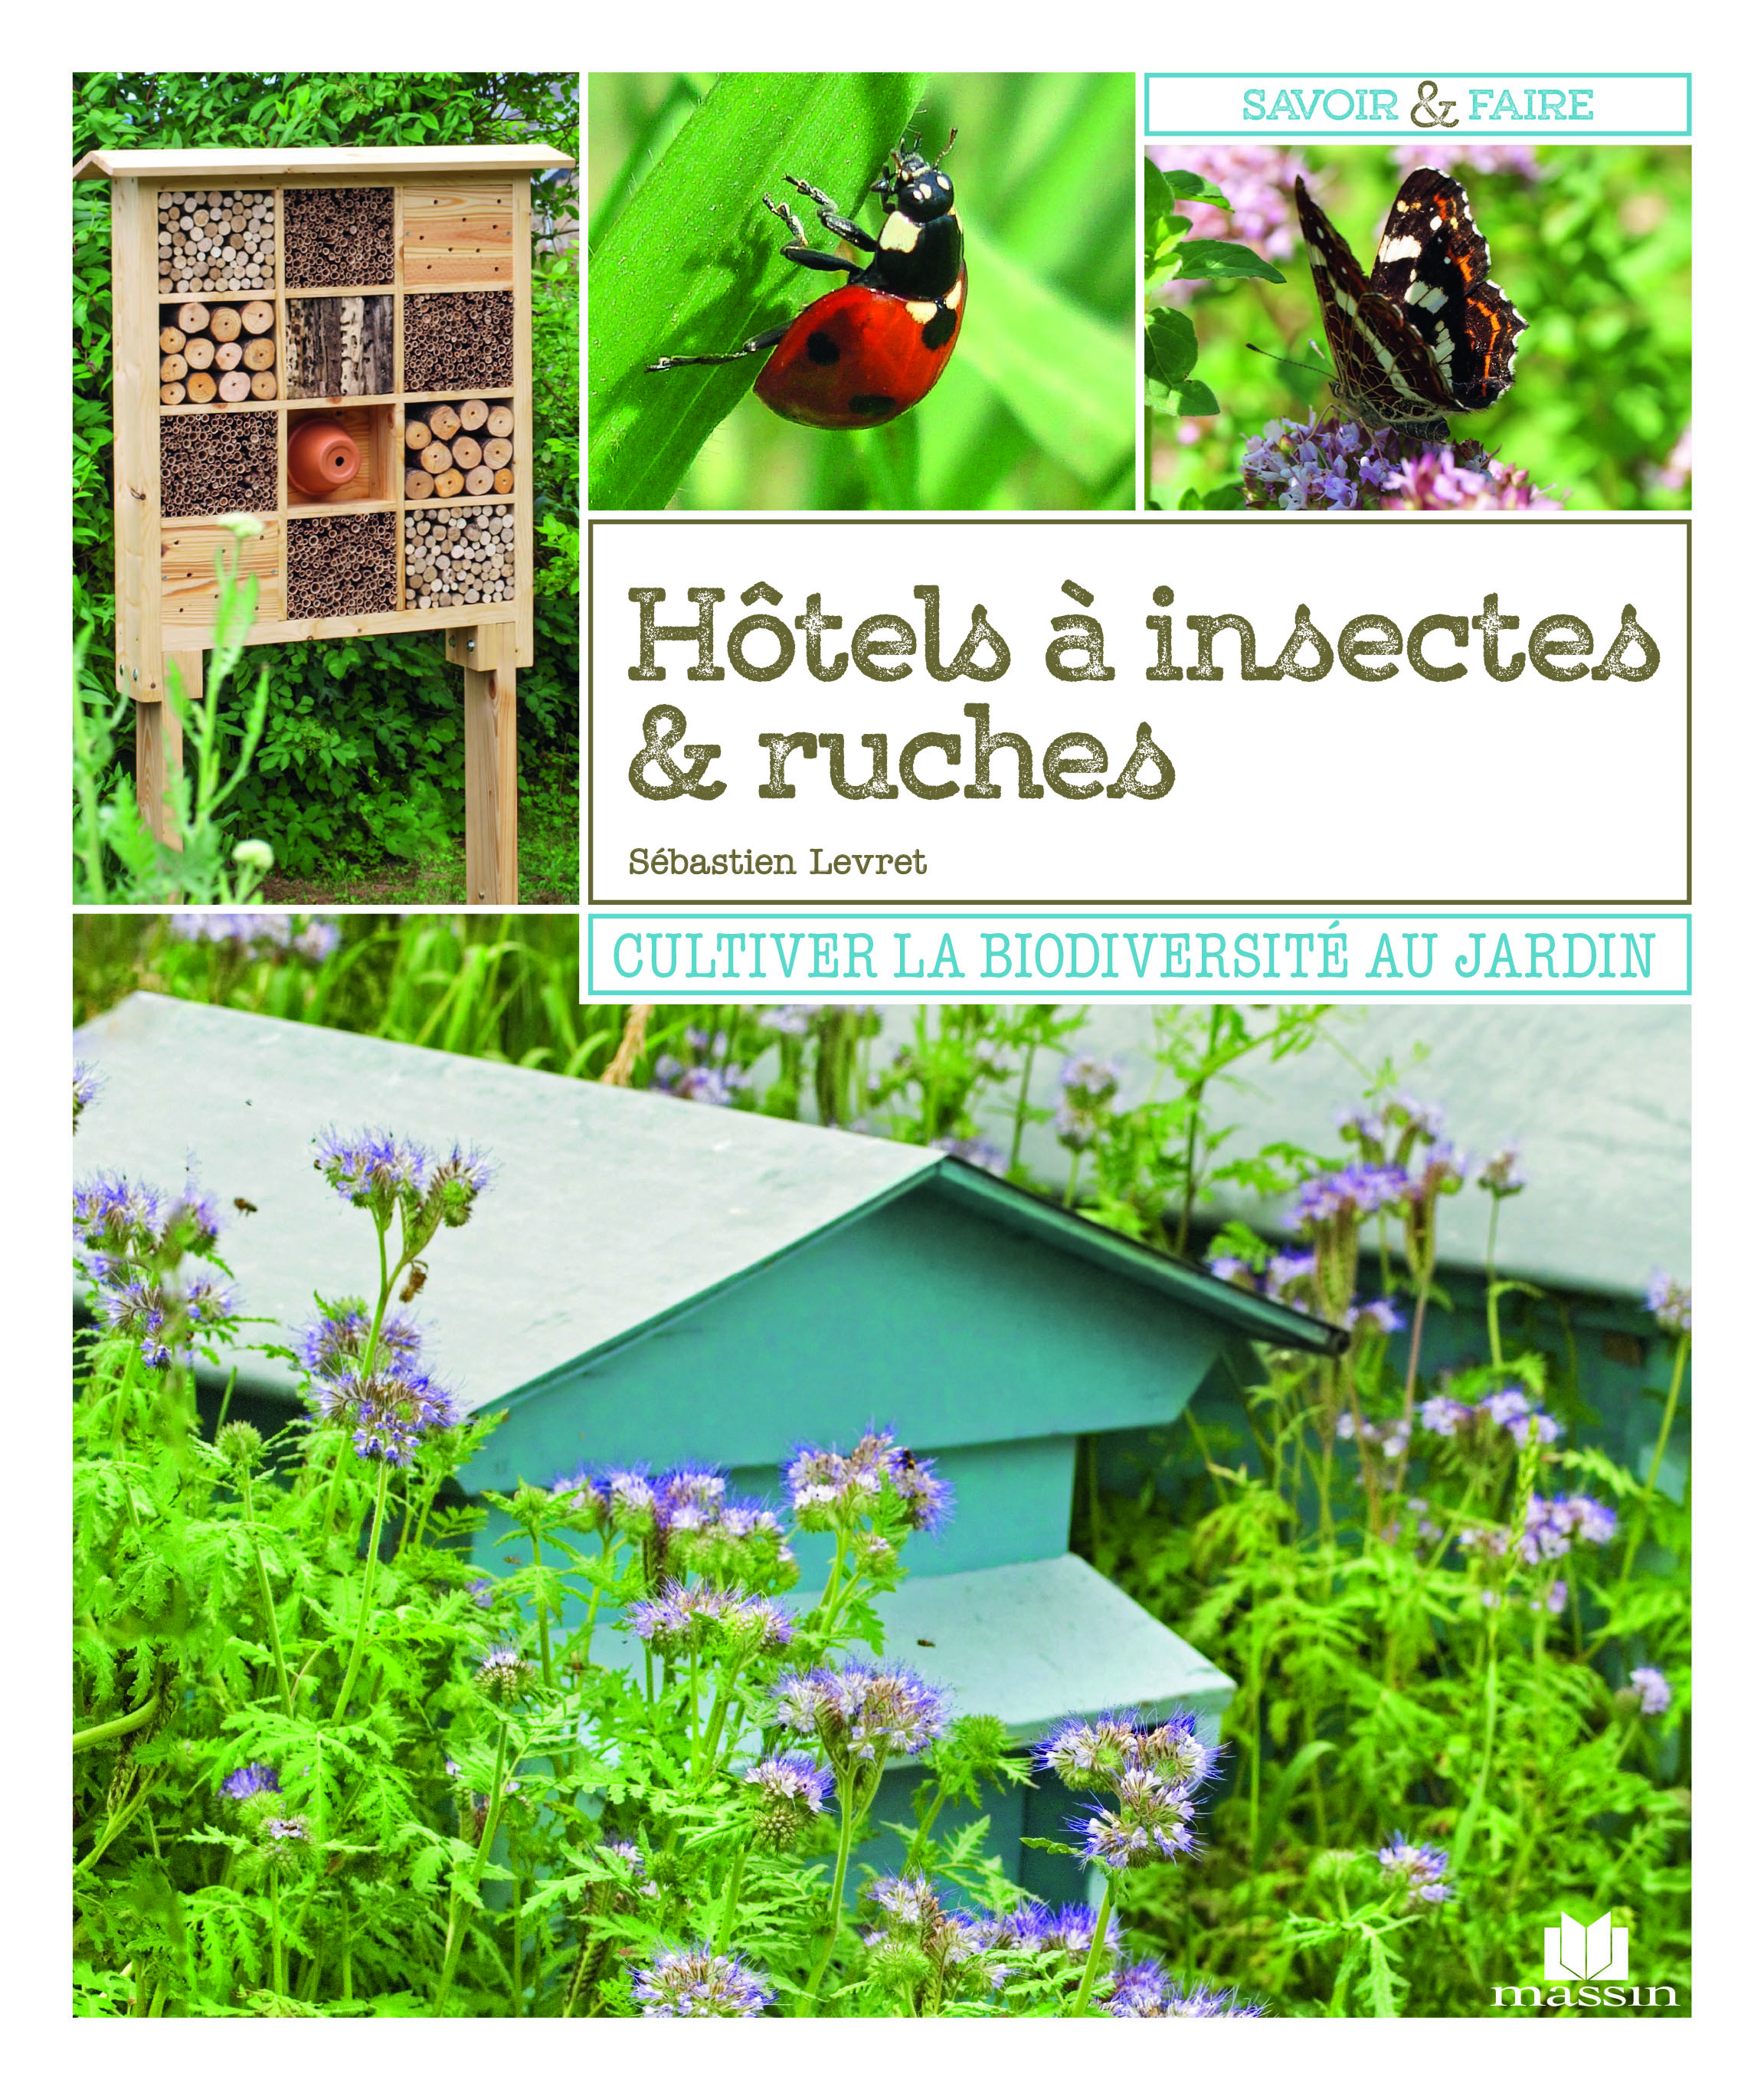 HOTELS A INSECTES ET RUCHES